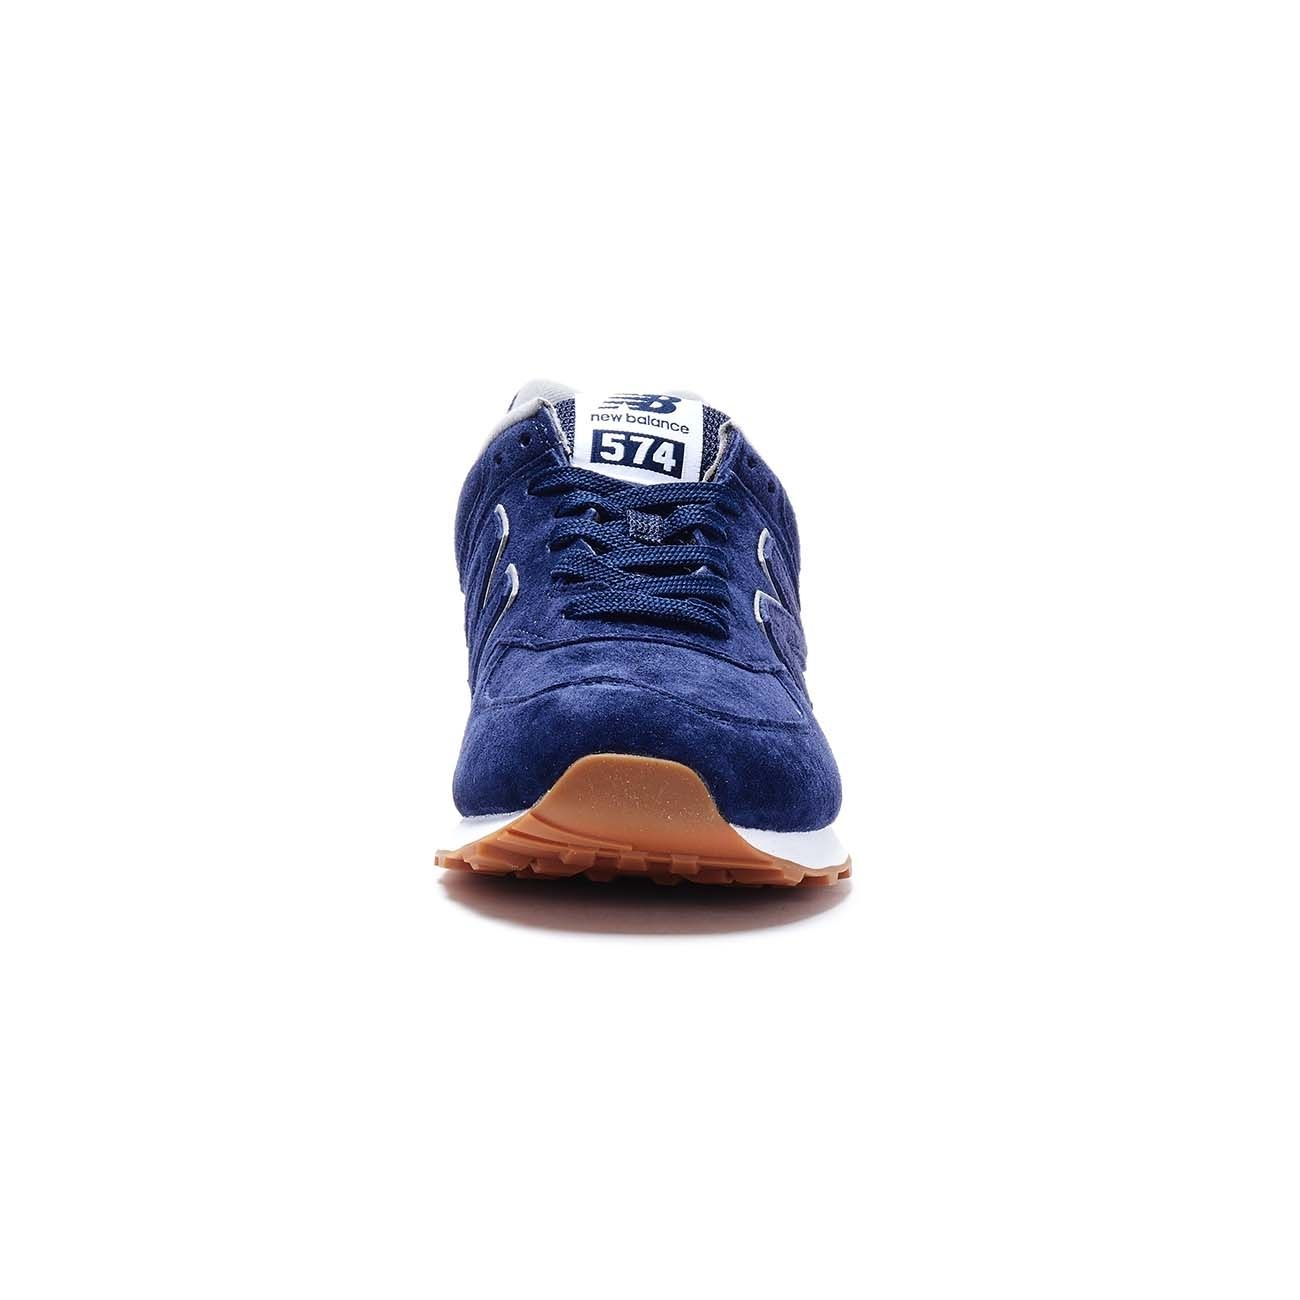 NEW BALANCE 574 LIFESTYLE PIGSKIN SUEDE SNEAKERS Man Pigment blue ...